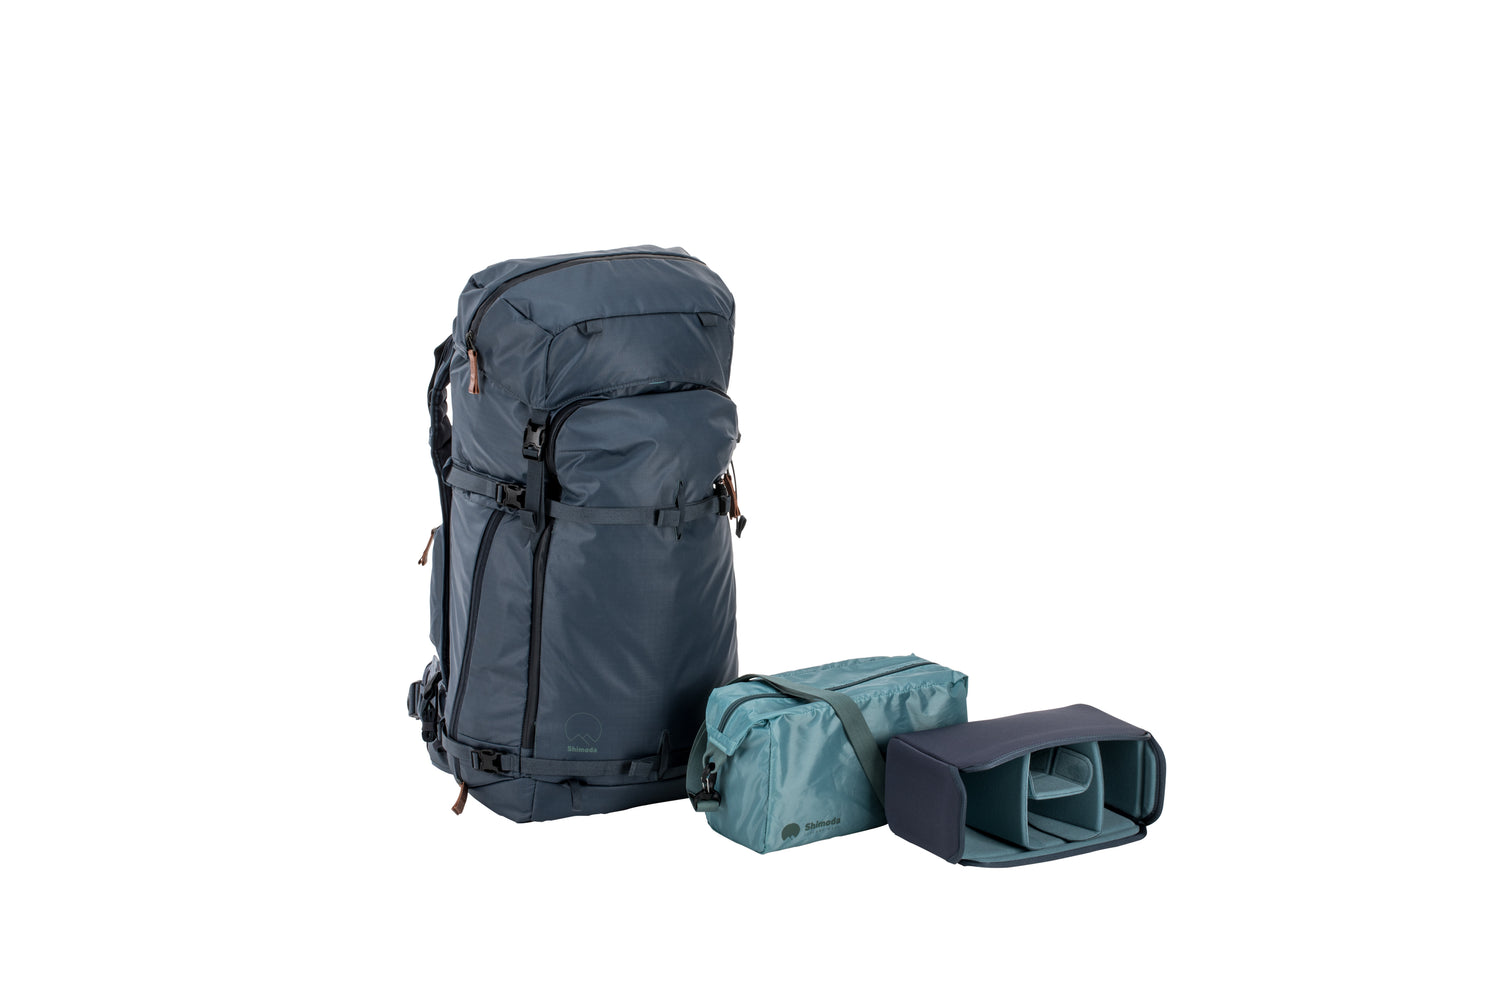 Shimoda Designs Explore 60 Backpack Starter Kit - Blue Nights